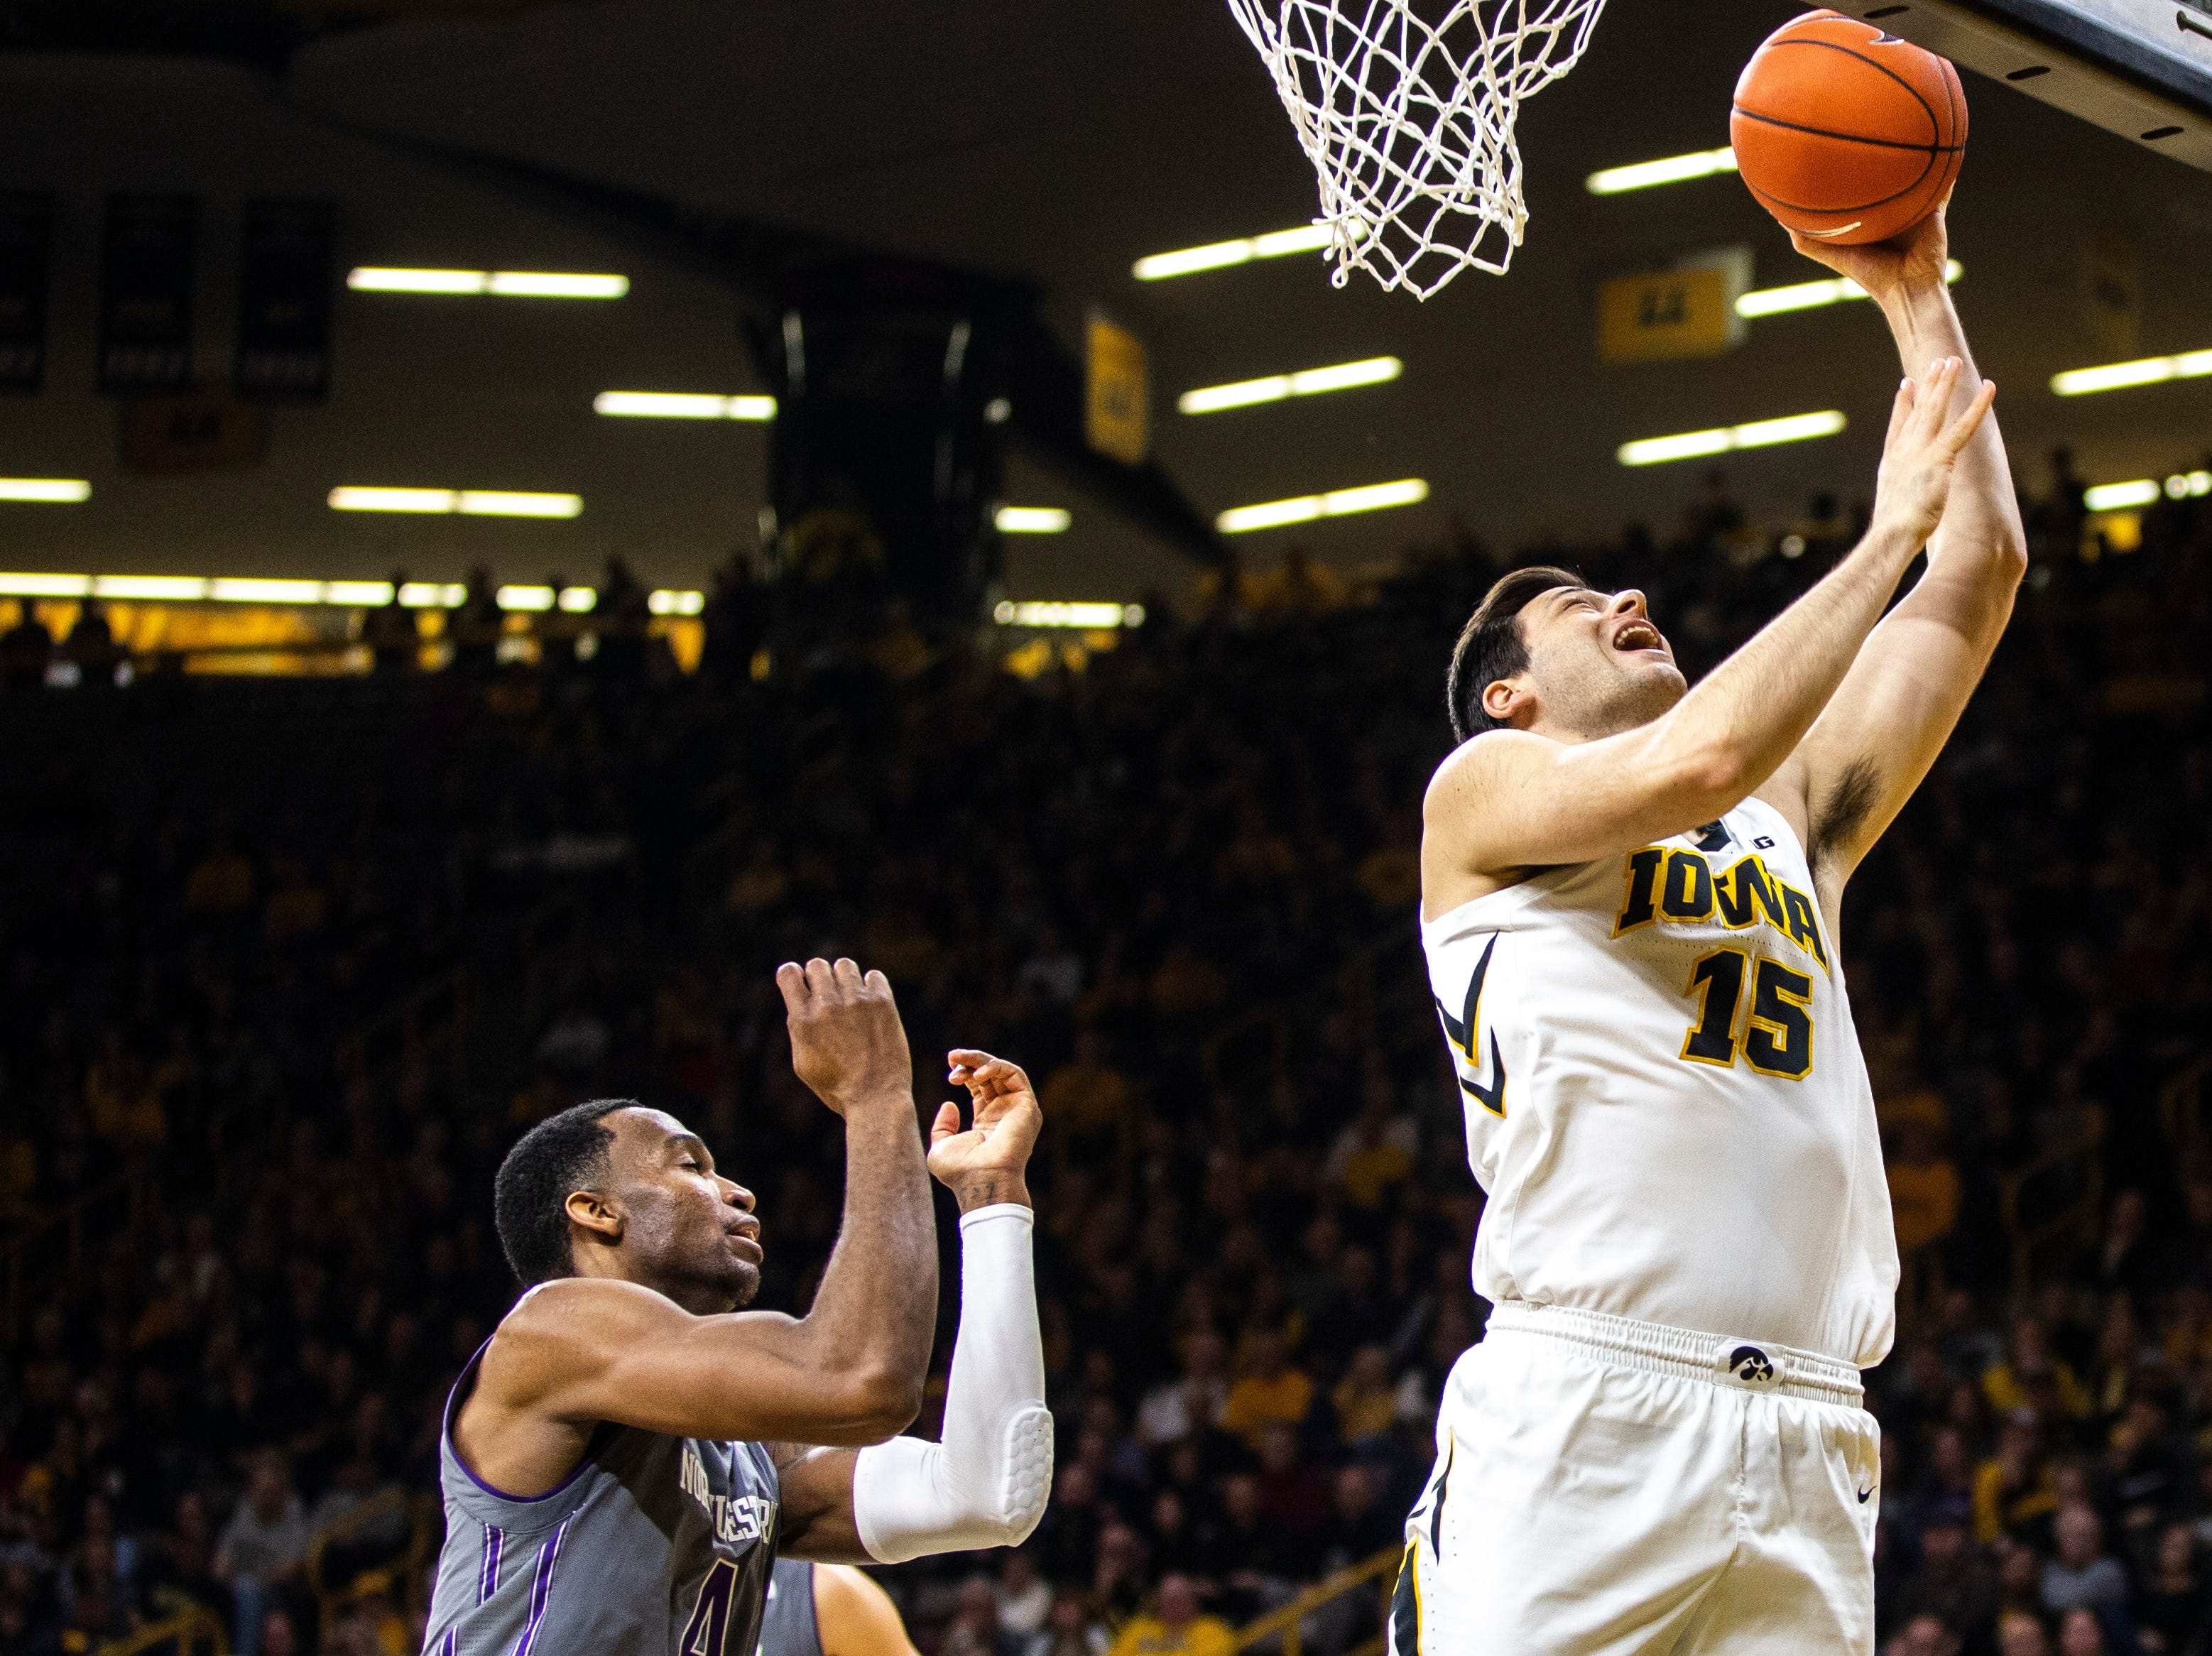 Iowa forward Ryan Kriener (15) drives to the basket while Northwestern forward Vic Law defends during a NCAA Big Ten Conference men's basketball game on Sunday, Feb. 10, 2019 at Carver-Hawkeye Arena in Iowa City, Iowa.